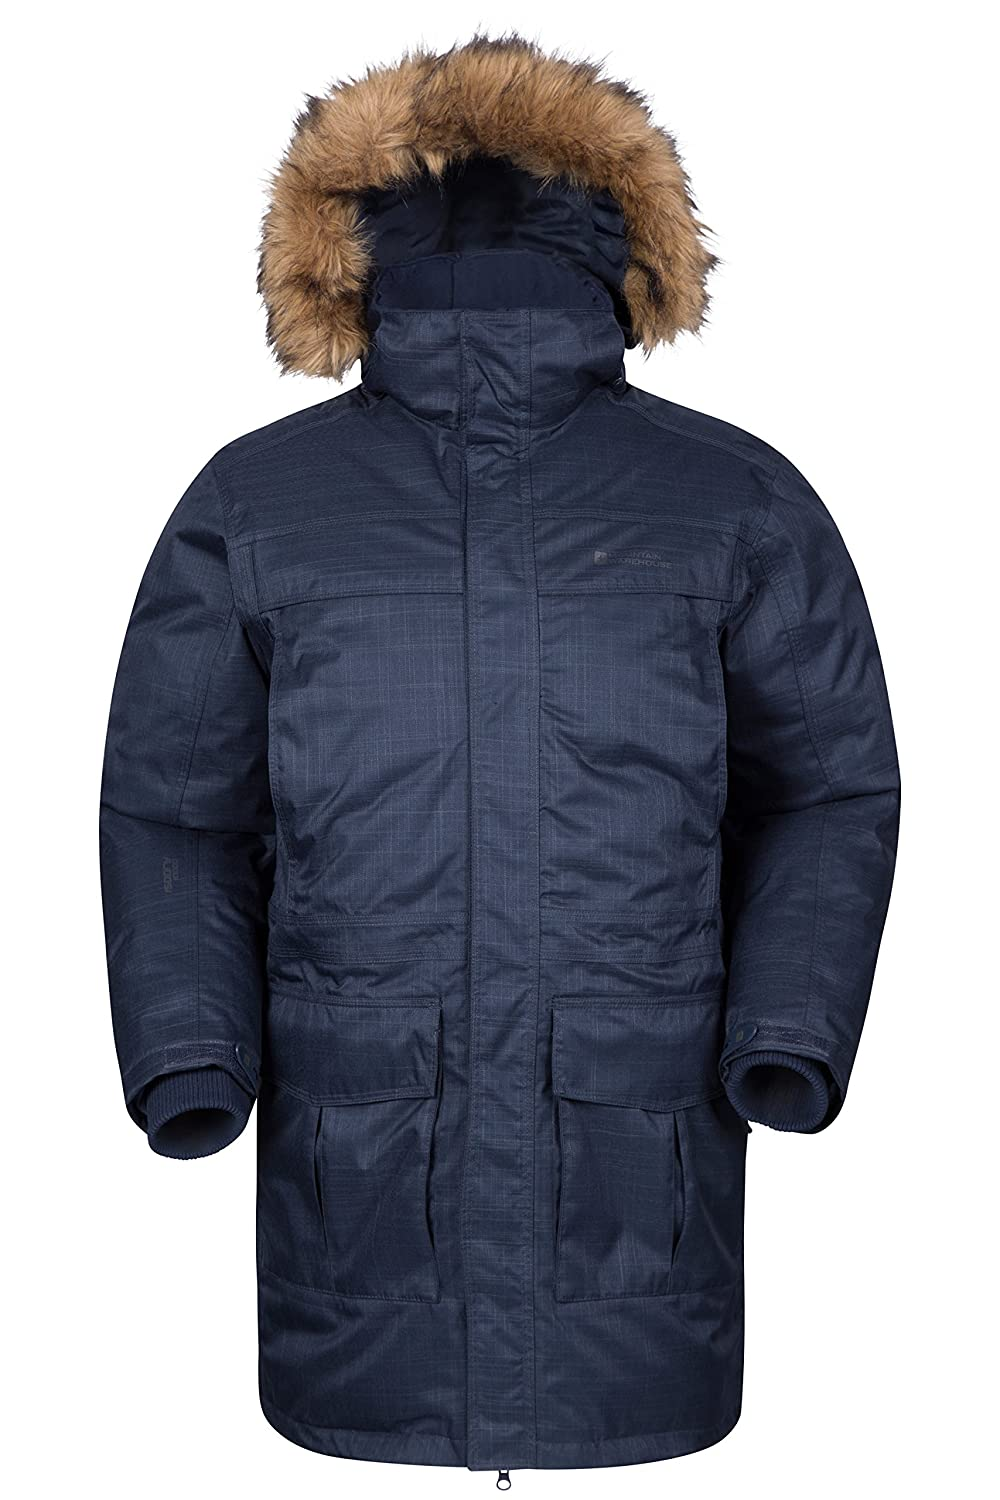 Mountain Warehouse Antarctic Textured Mens Down Jacket Navy X-Small 018823034002